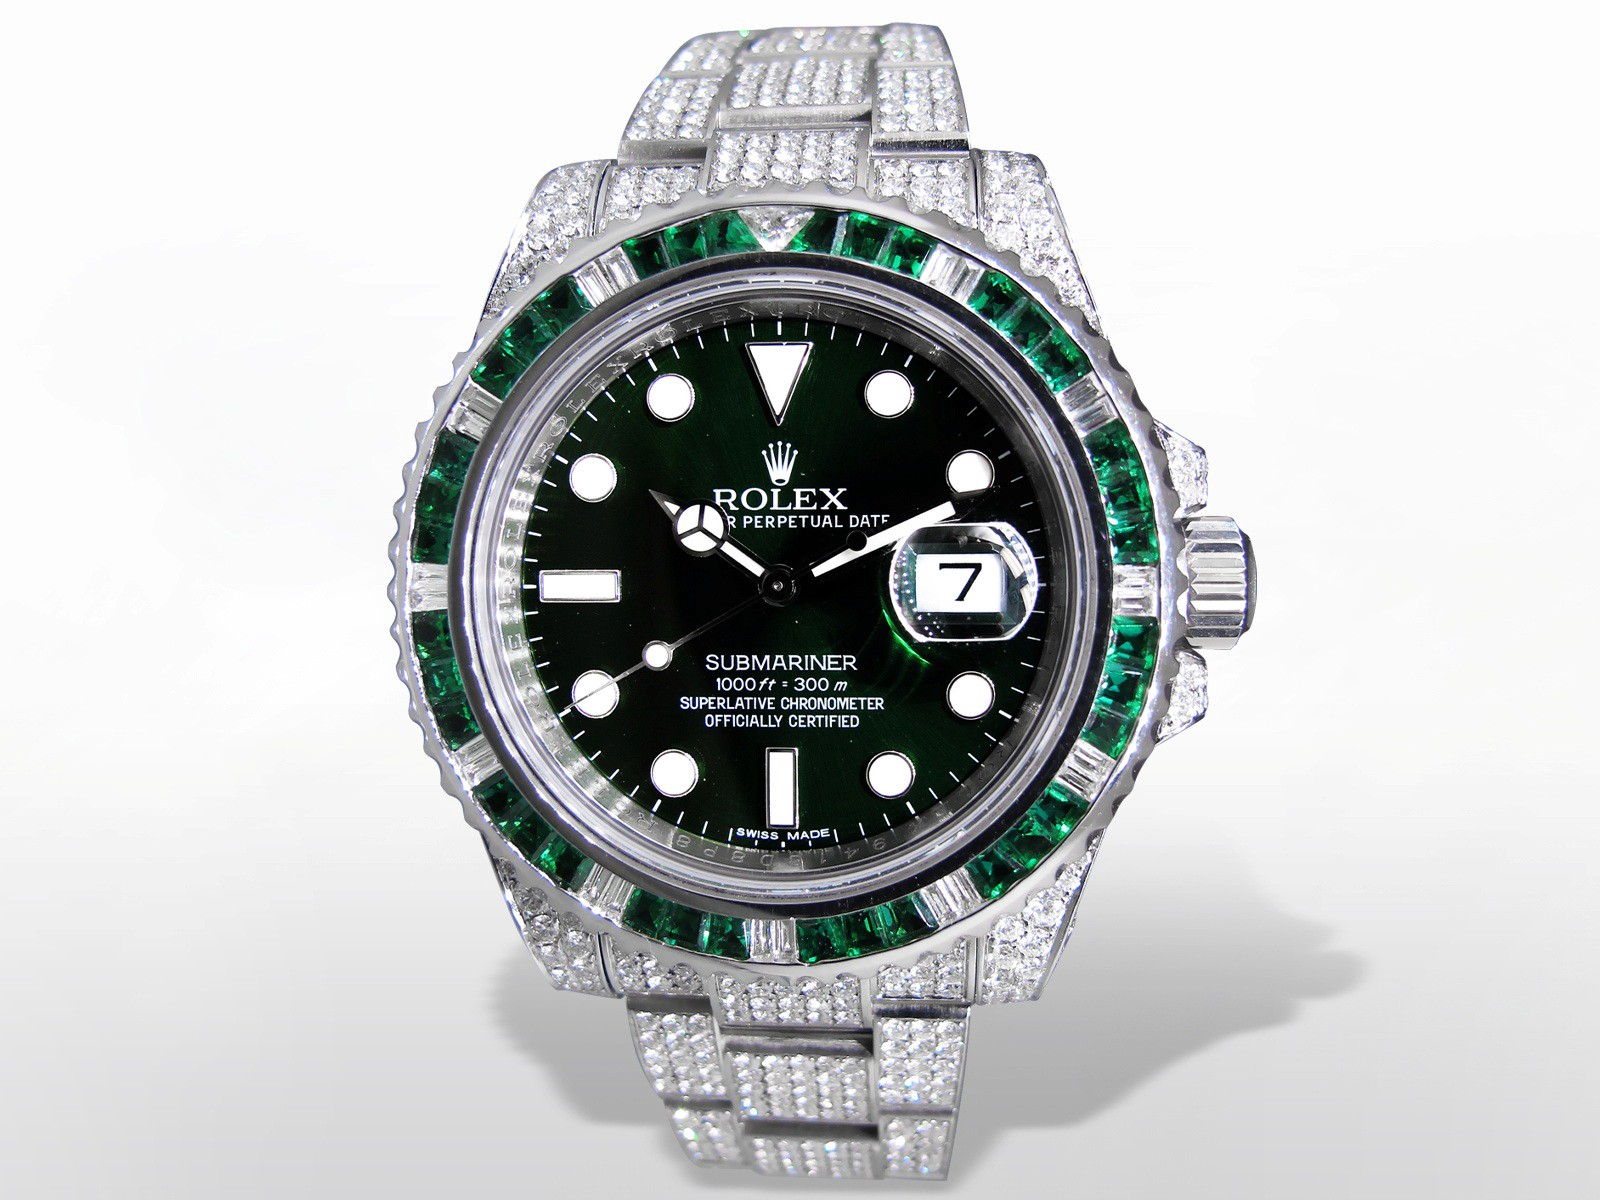 Toronto Sunday 03 26 2018 Rolex Submariner And Iconic Classic Comes To Mississauga At Federal Auction S Upcoming Live Fine Jewellery Swiss Watch